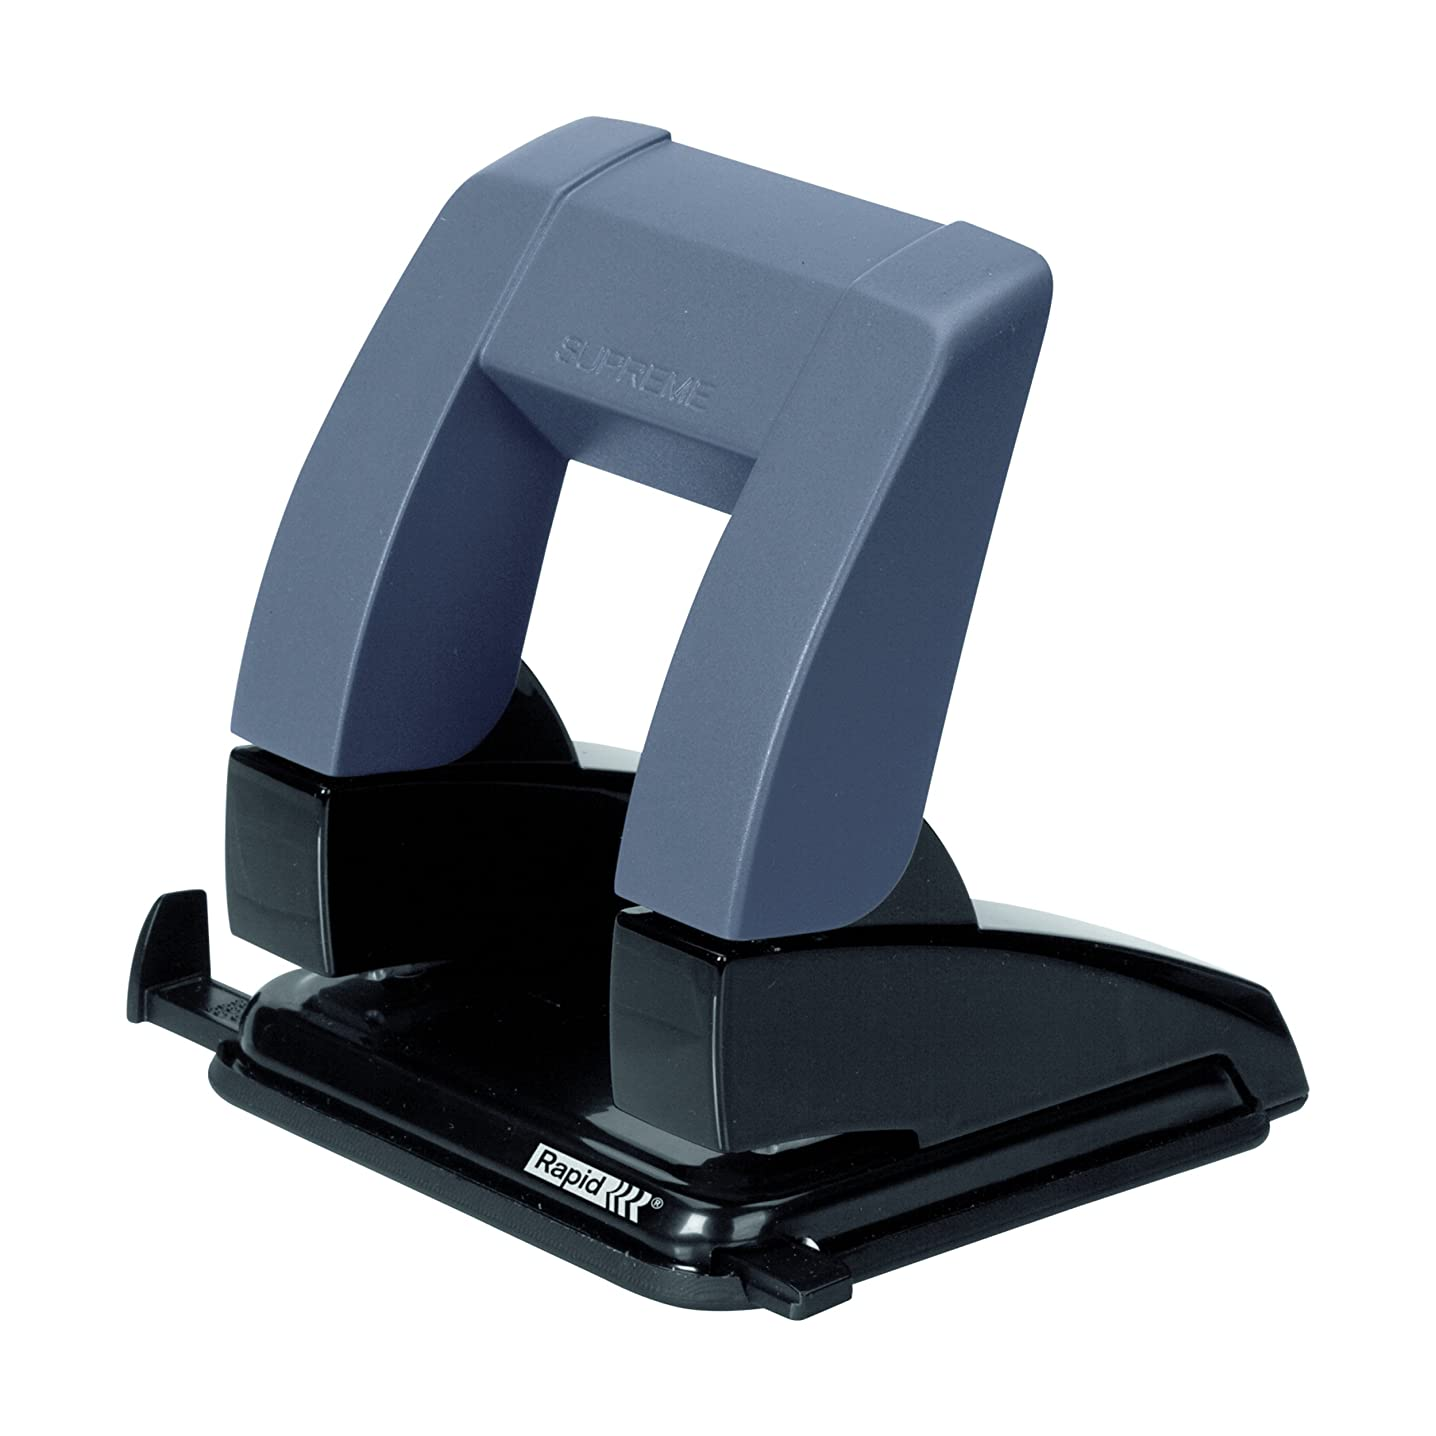 Rapid SP20 Press Less 24845411 Office Hole Punch Metal in Blister Packaging Capacity 20 Sheets / Black